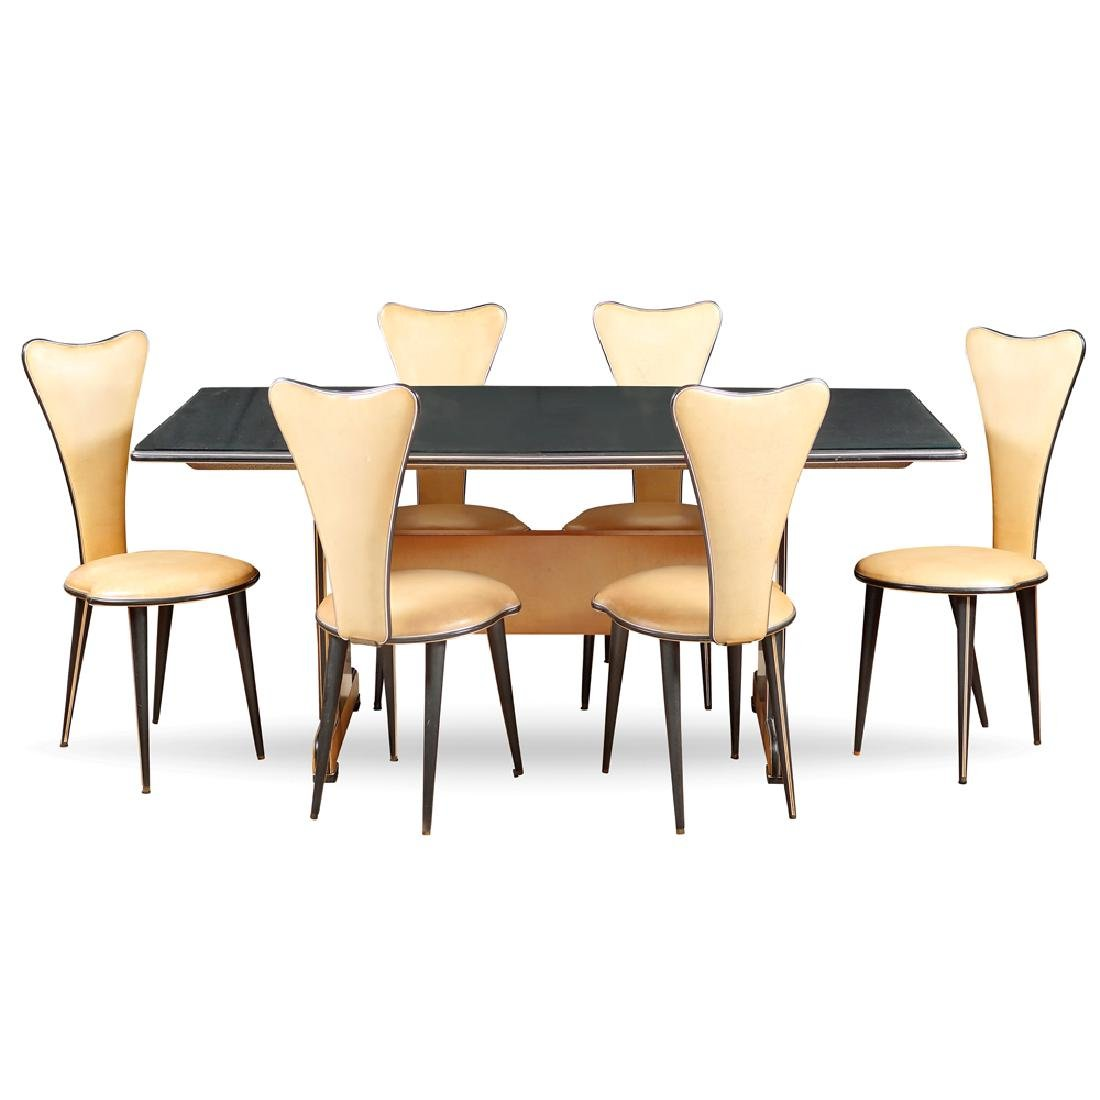 Table with six chairs Italy 1940ies